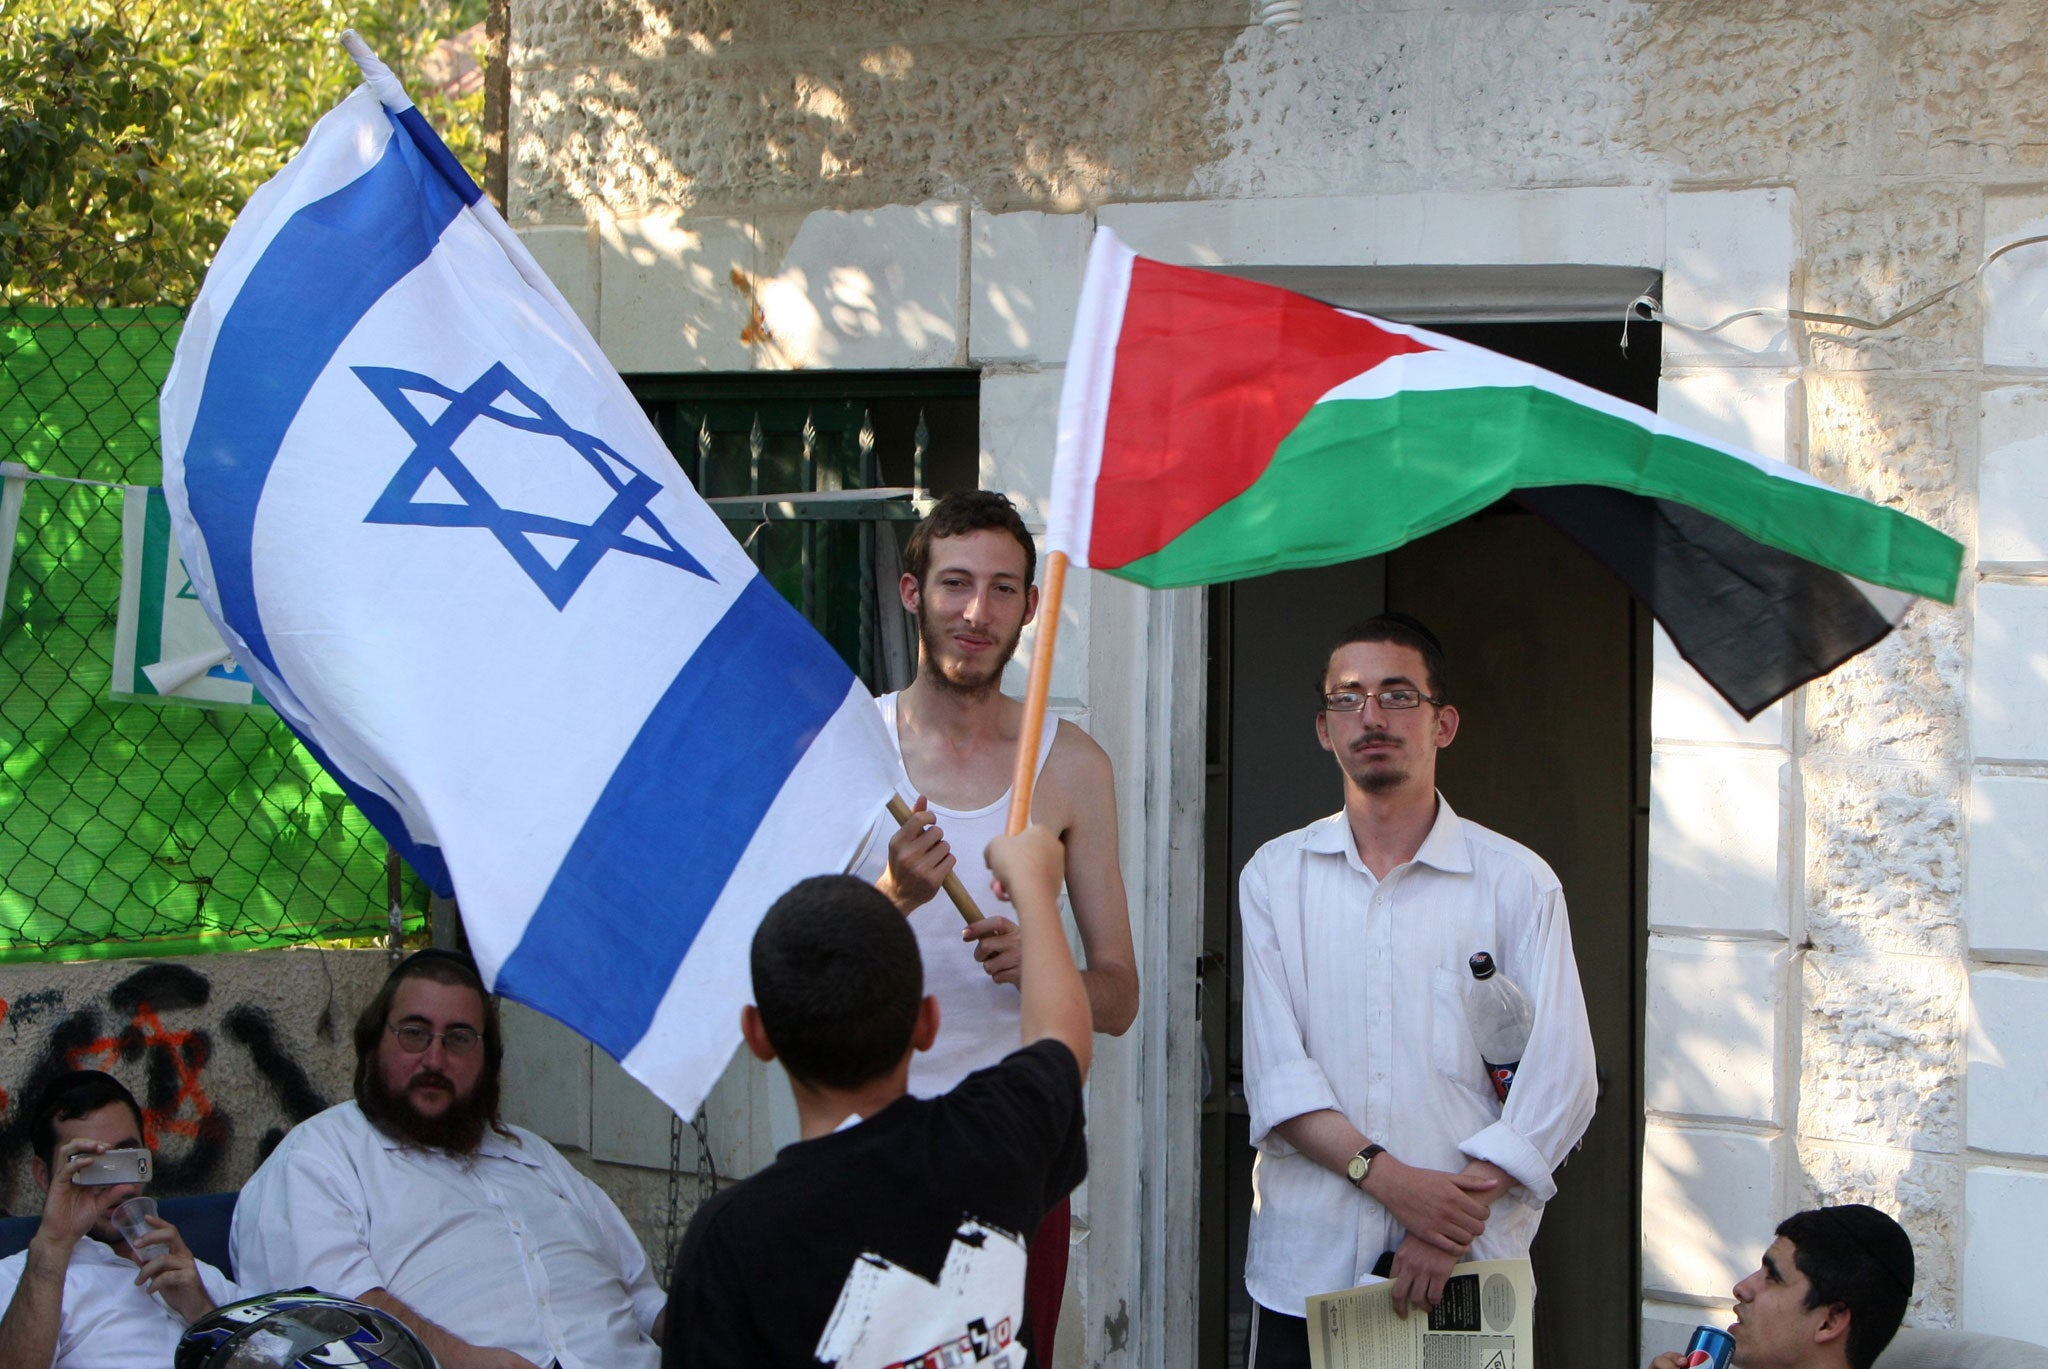 Palestinian statehood: True friends of Israel will vote yes for the